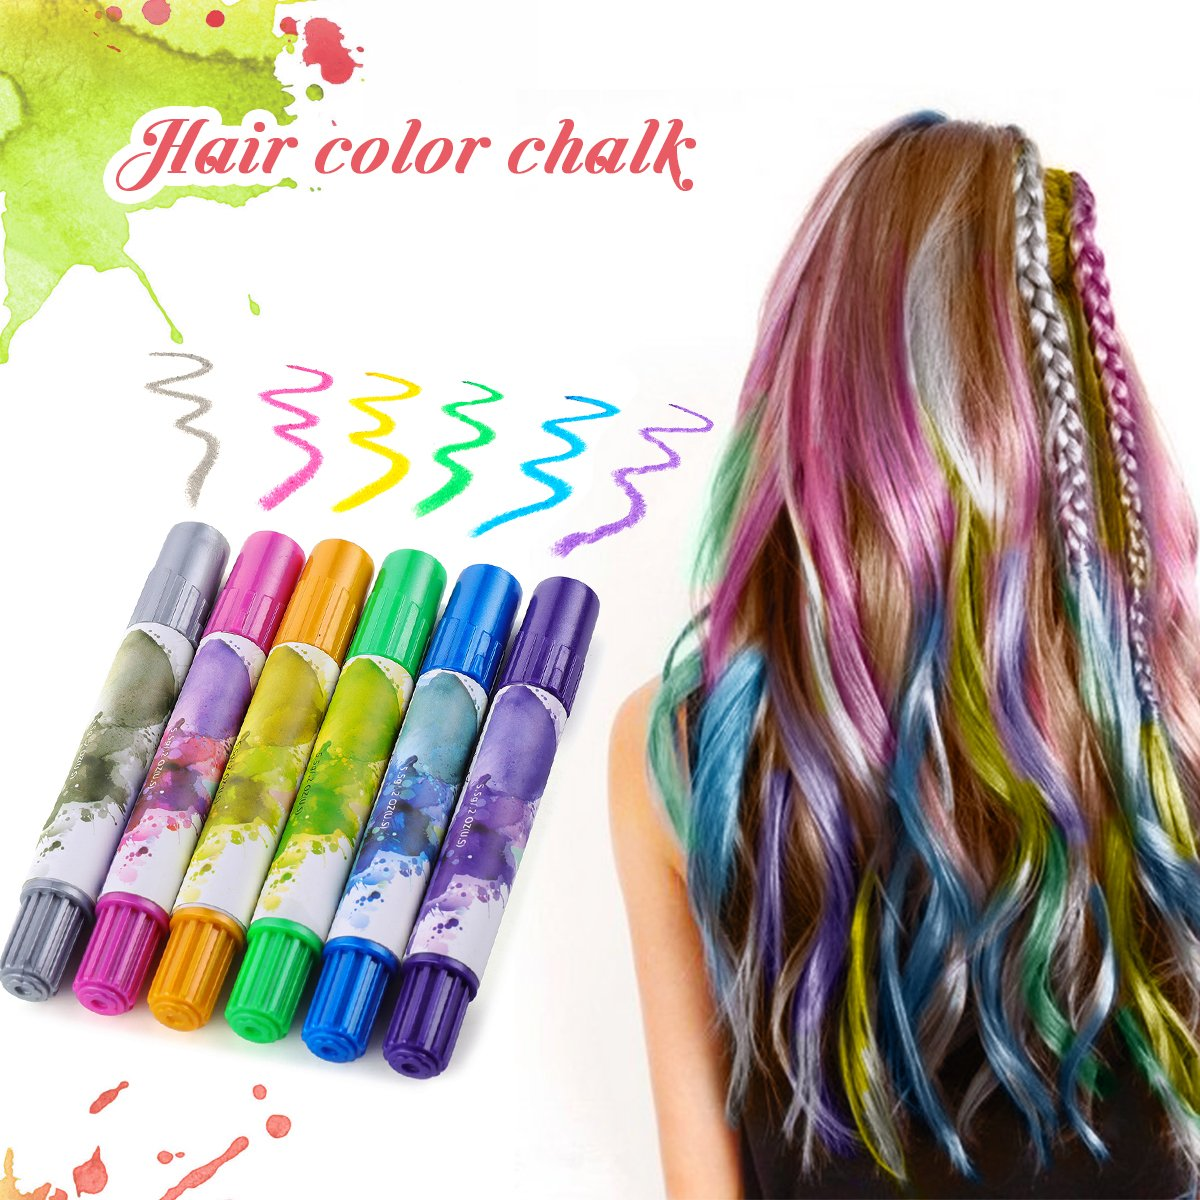 Hair Color Chalk Pens Y.F.M, 6 Colors Non-Toxic, Safe Hair Chalk in Any Ages, Colored Shimmer Temporary Hair Dye, Party Cosplay DIY, Gifts for Birthday Festival, Colors For All Hair